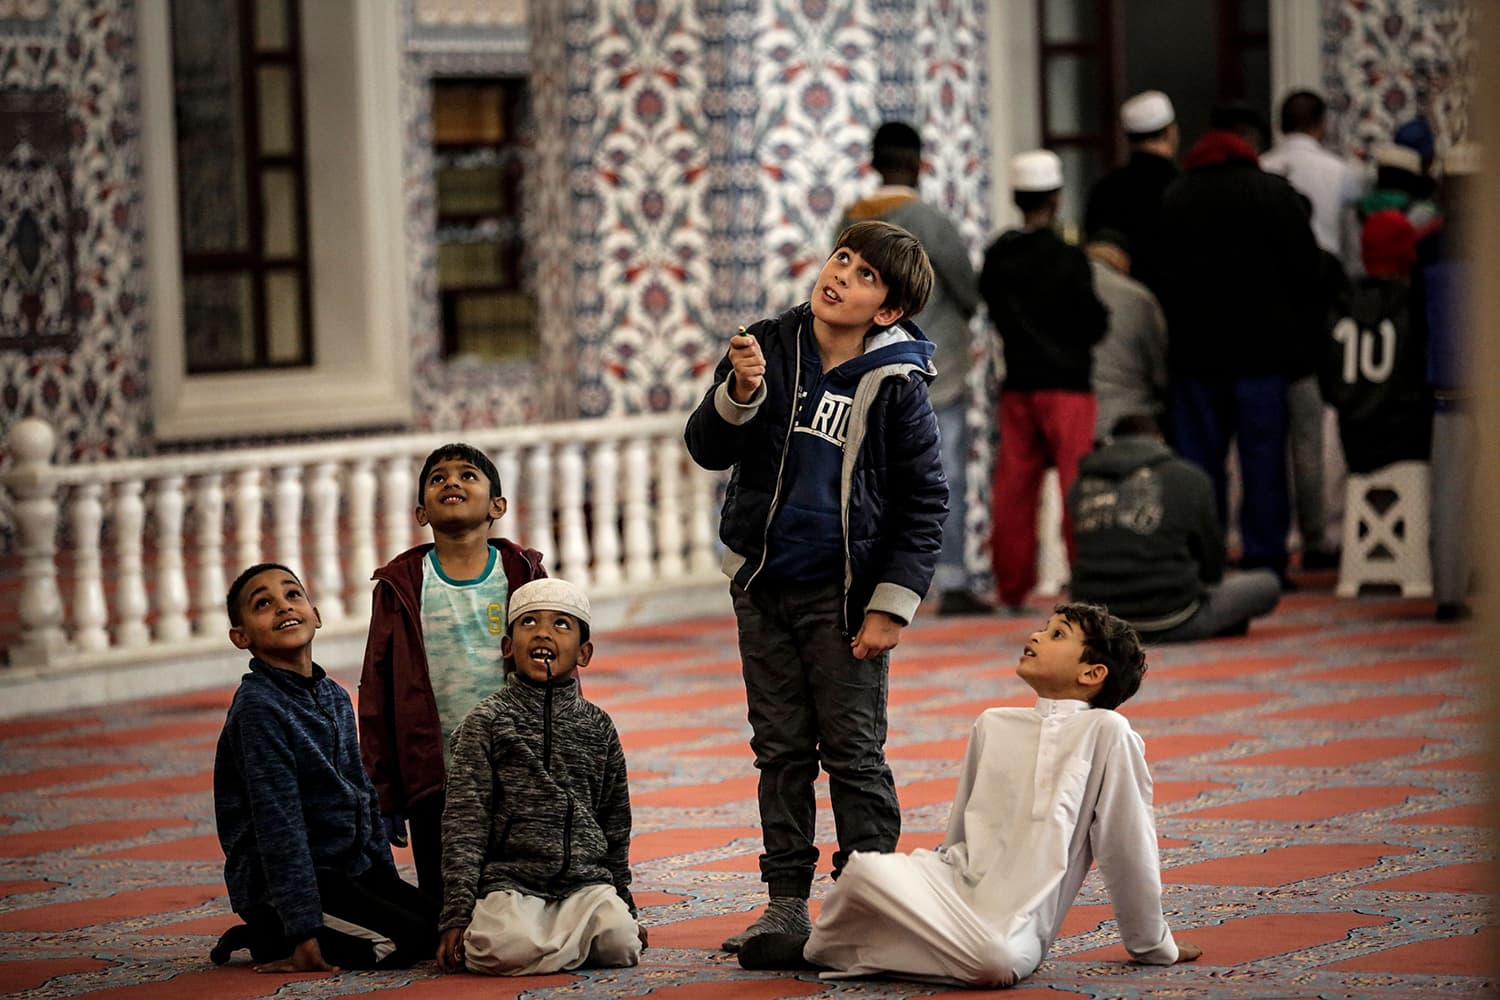 Boys look up as Muslim worshippers pray the first Taraweeh evening prayer on the first day of the Muslim fasting month of Ramazan at the Nizamiye Mosque in Midrand, Johannesburg. — AFP